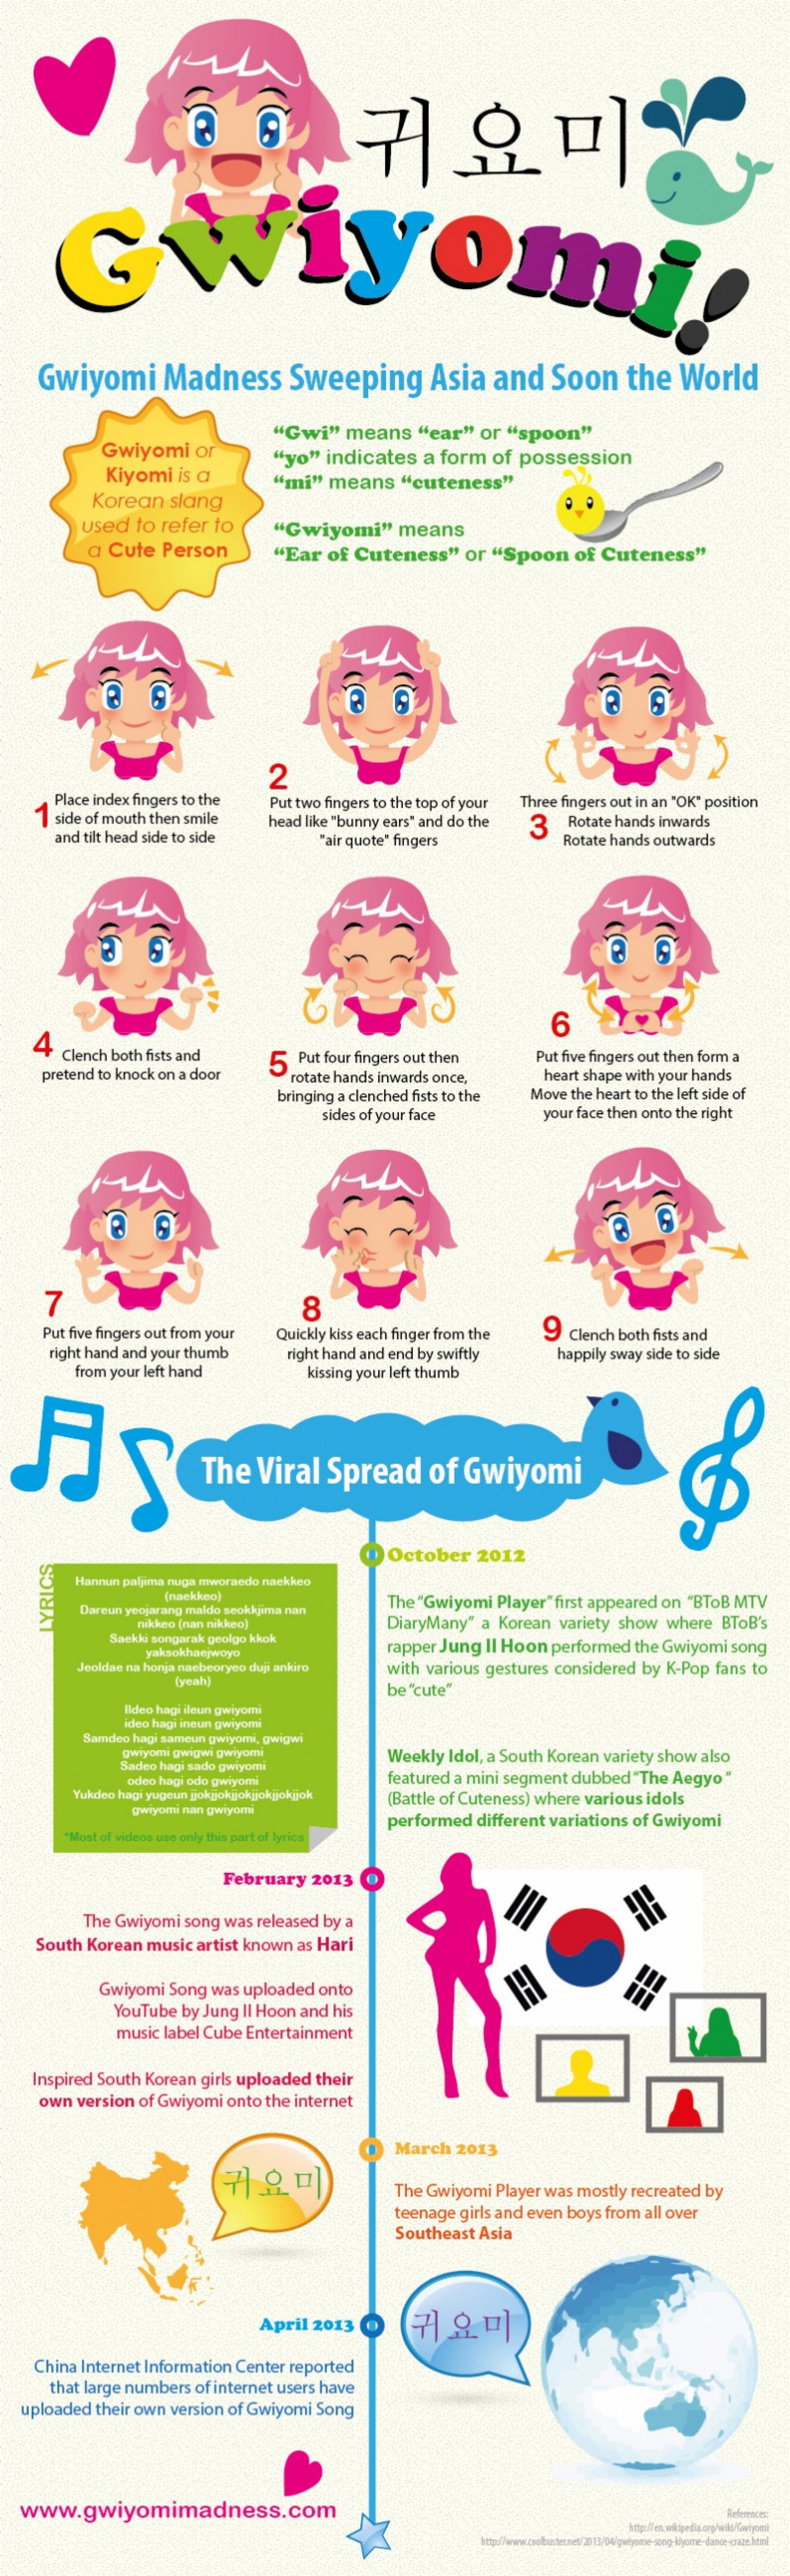 Gwiyomi Madness Sweeping Asia and Soon the Wolrd Infographic